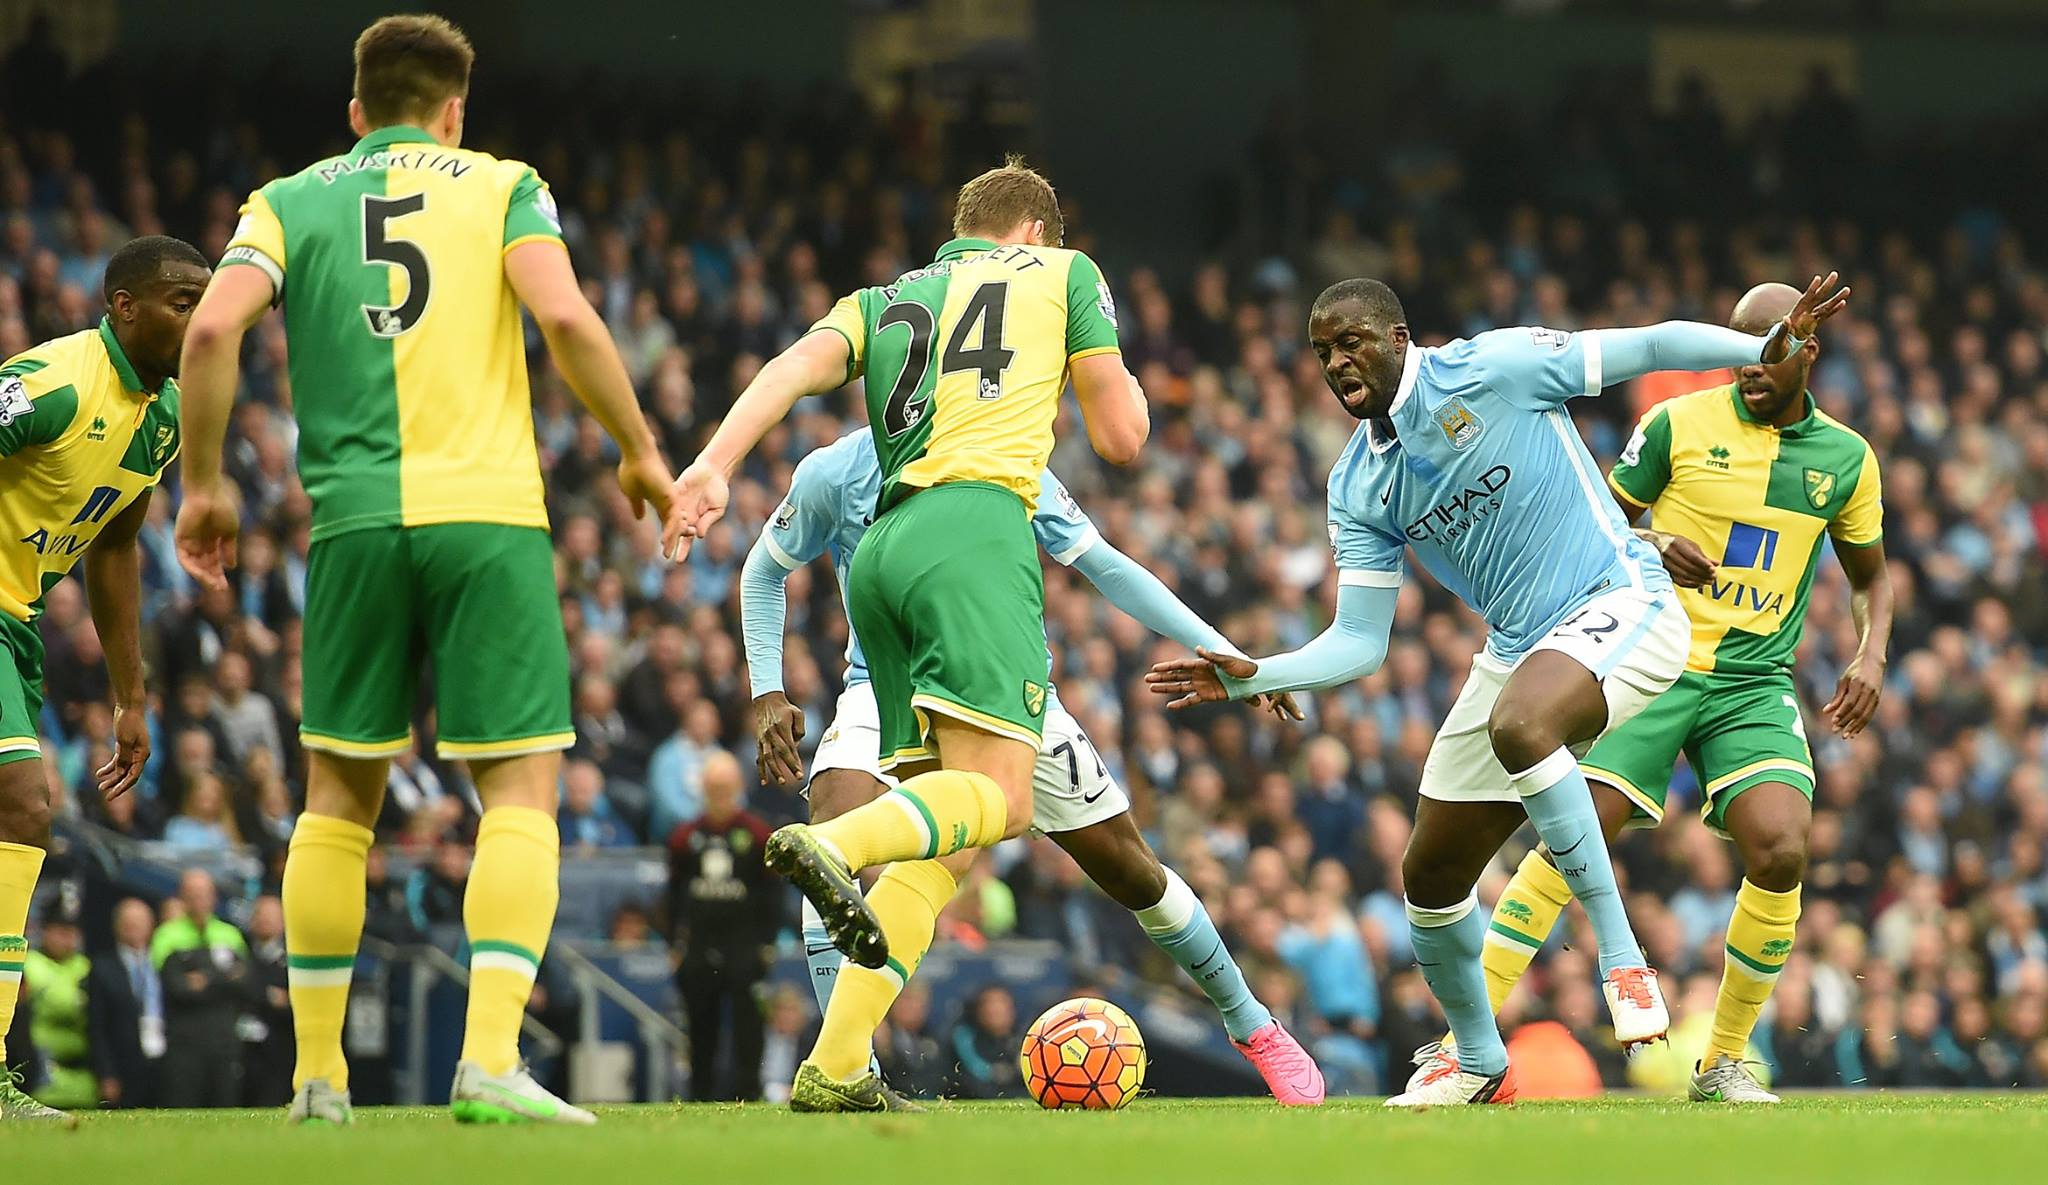 On the spot - Yaya stroked home a penalty winner against Norwich. Will he be on the scoresheet at Villa? Courtesy@MCFC